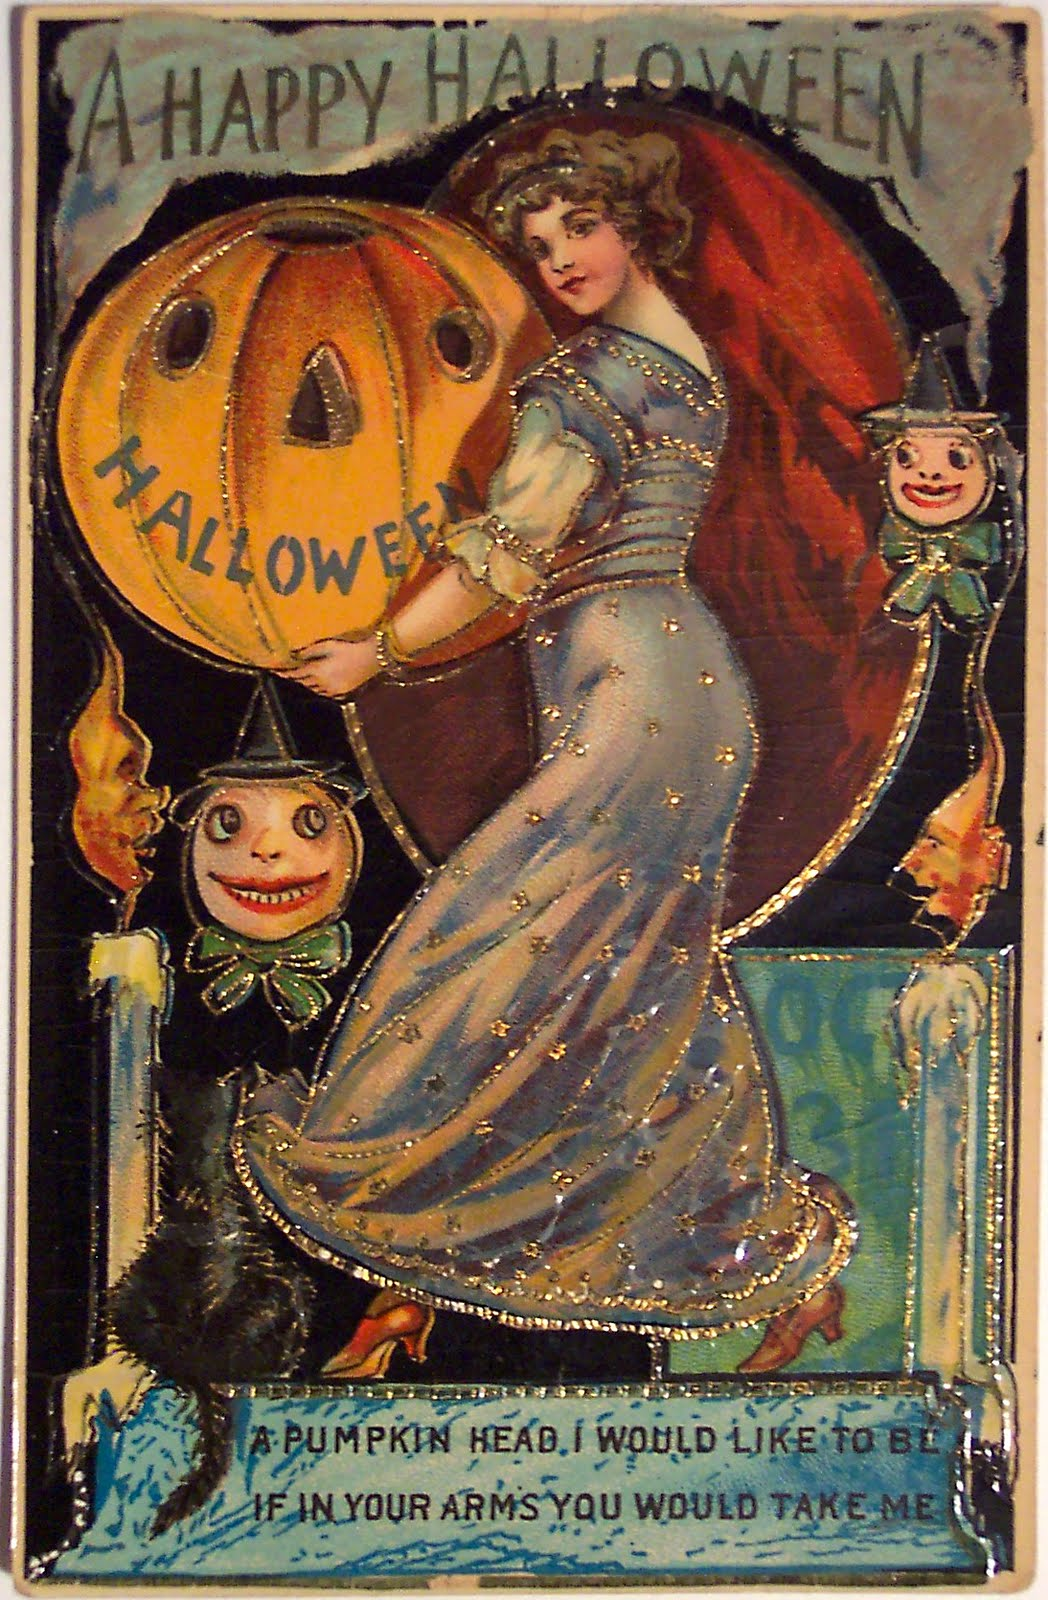 Vintage Holiday Images &amp Cards: Vintage Halloween Classics - Vintage Halloween